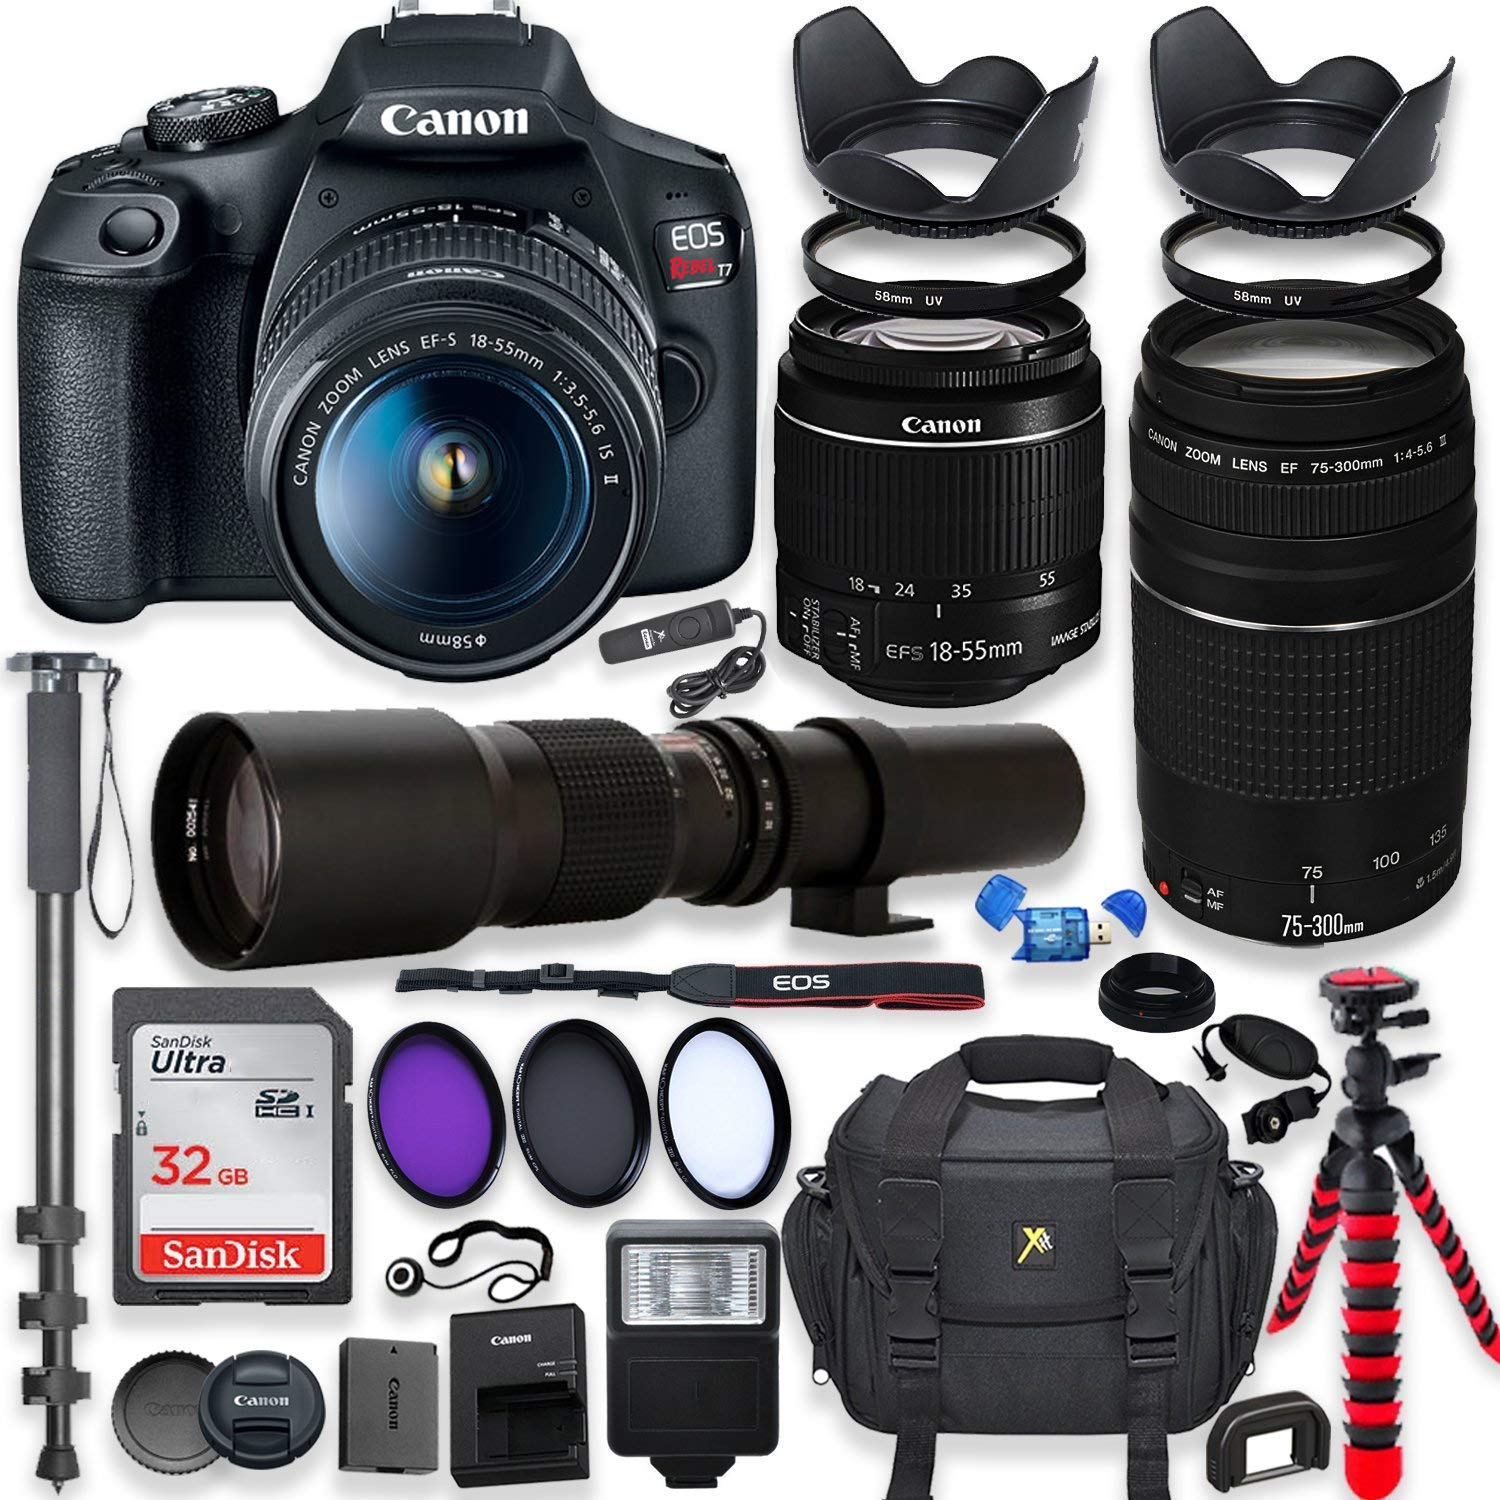 Canon EOS Rebel T7 DSLR Camera with 18-55mm is II Lens Bundle + Canon EF 75-300mm f/4-5.6 III Lens and 500mm Preset Lens + 32GB Memory + Filters + Monopod + Spider Flex Tripod + Professional Bundle by Canon